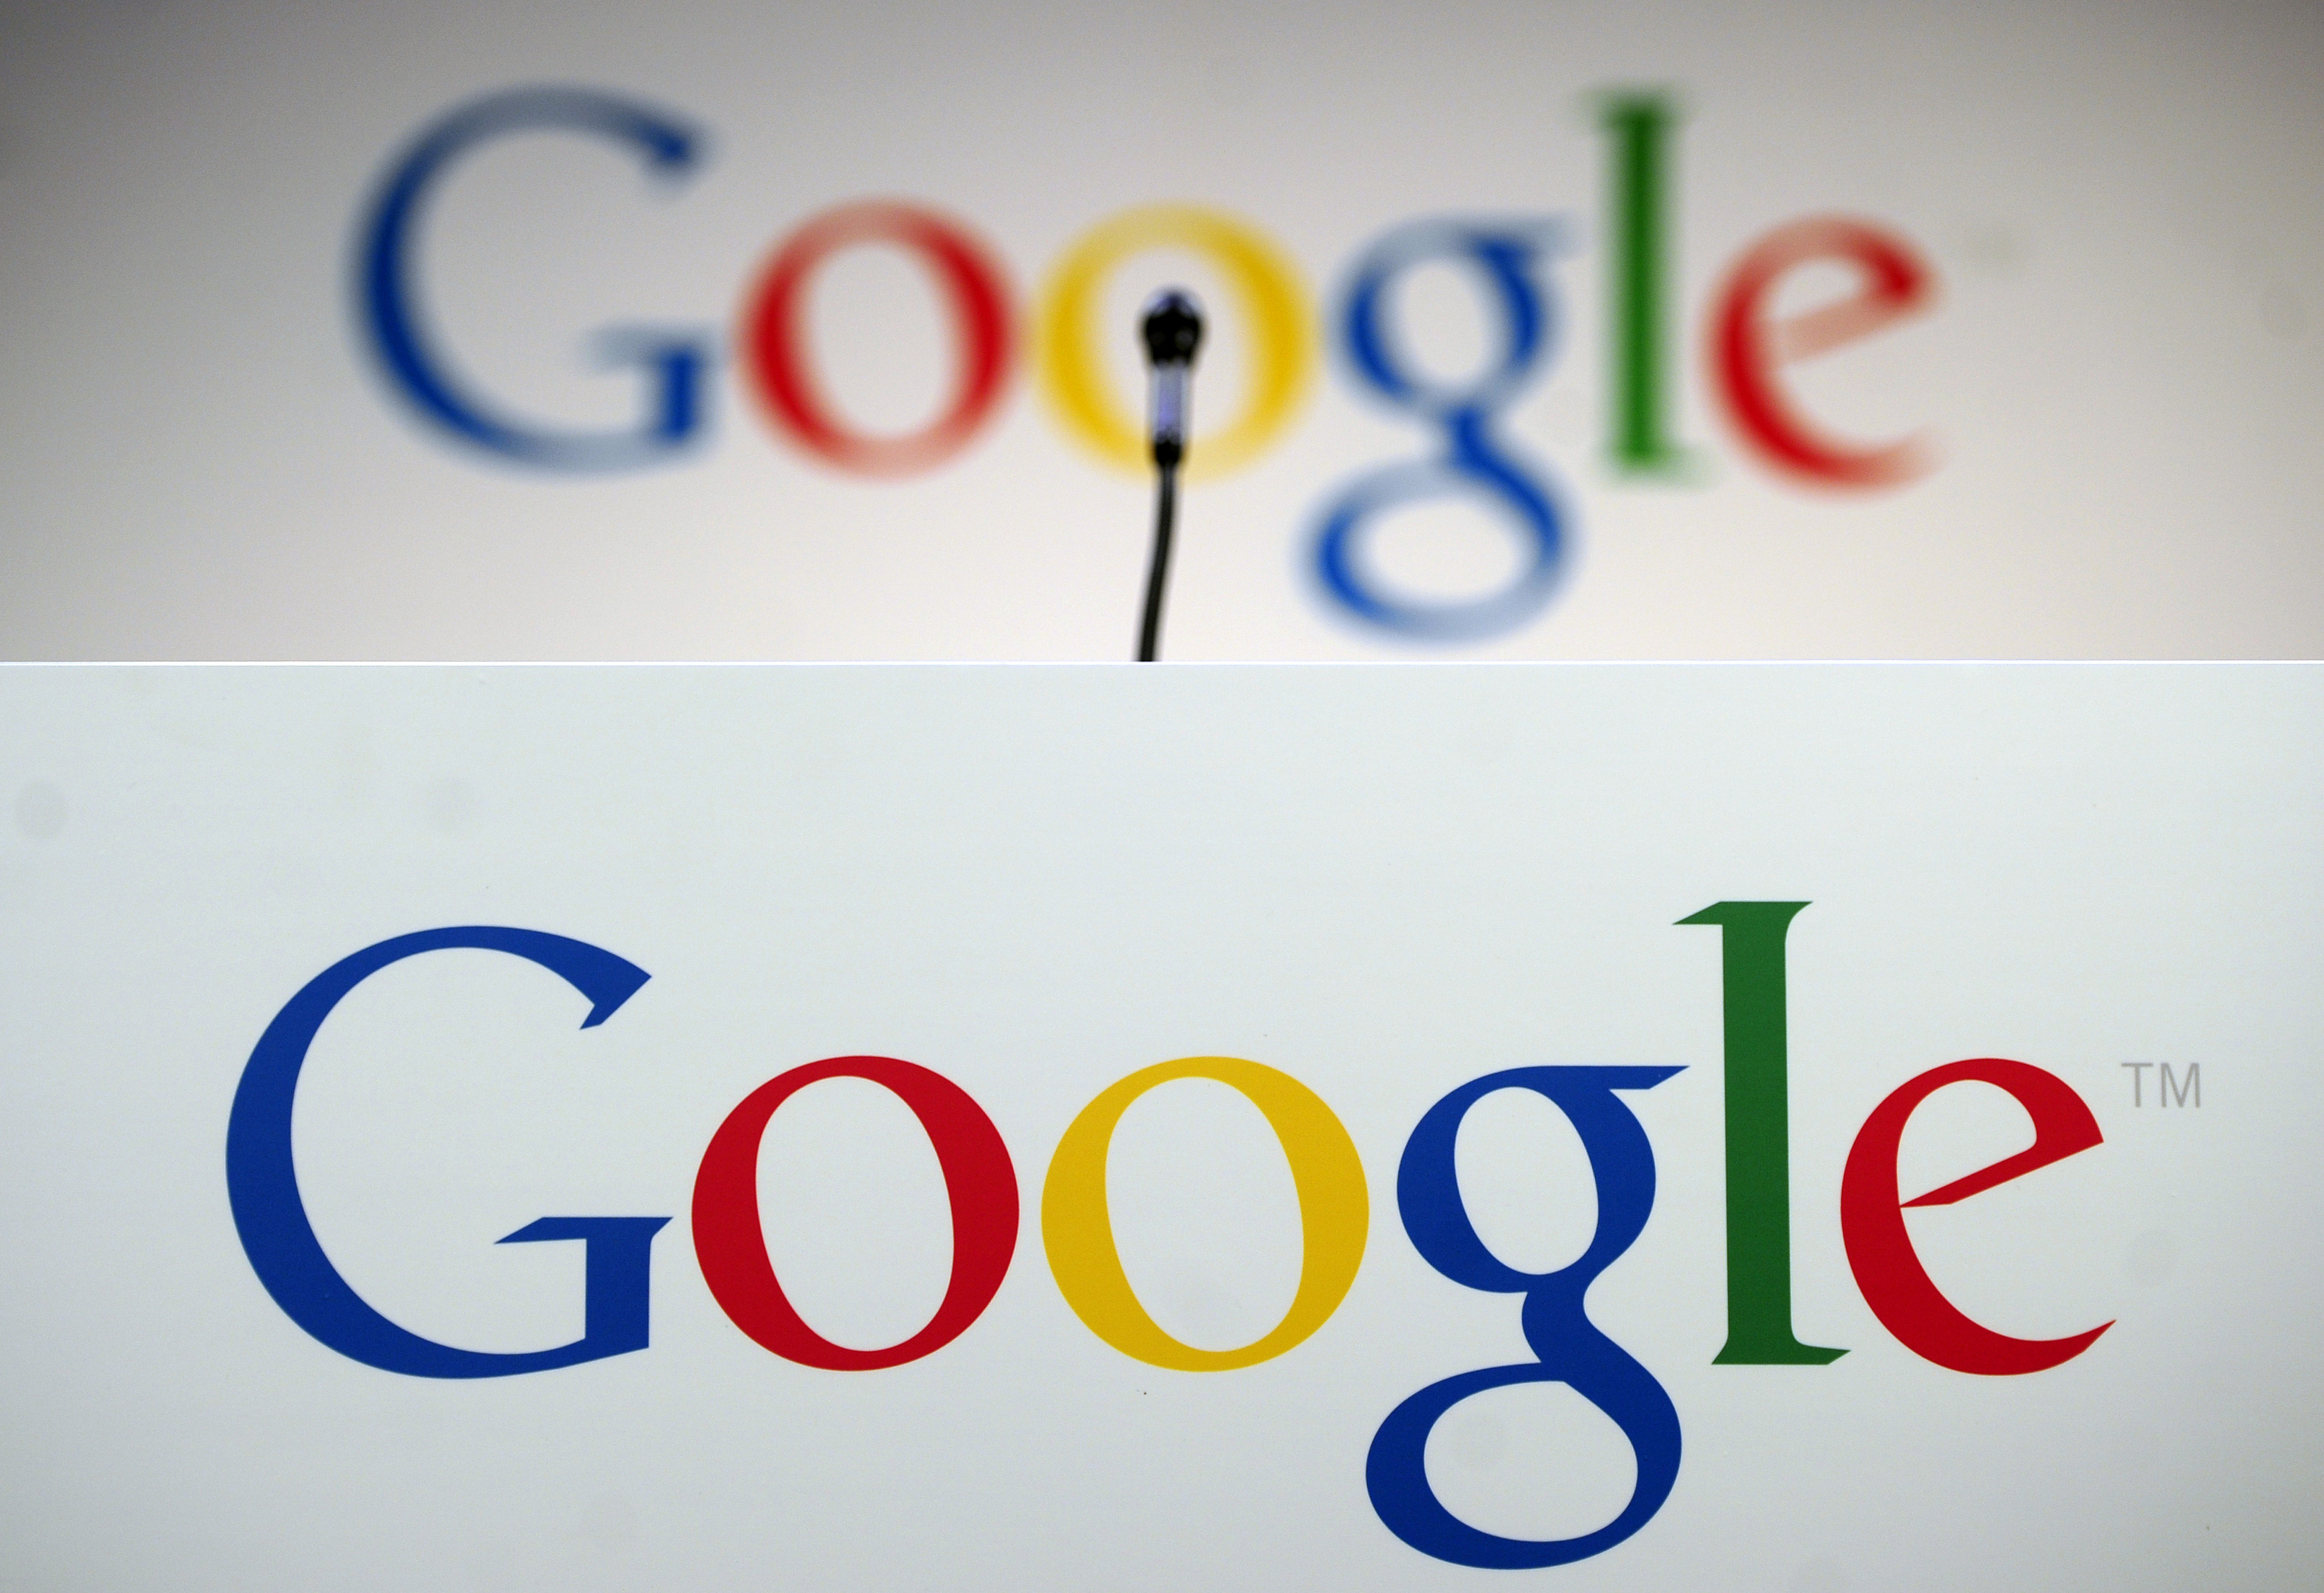 Google unveils 'Lollipop' Android system, new devices